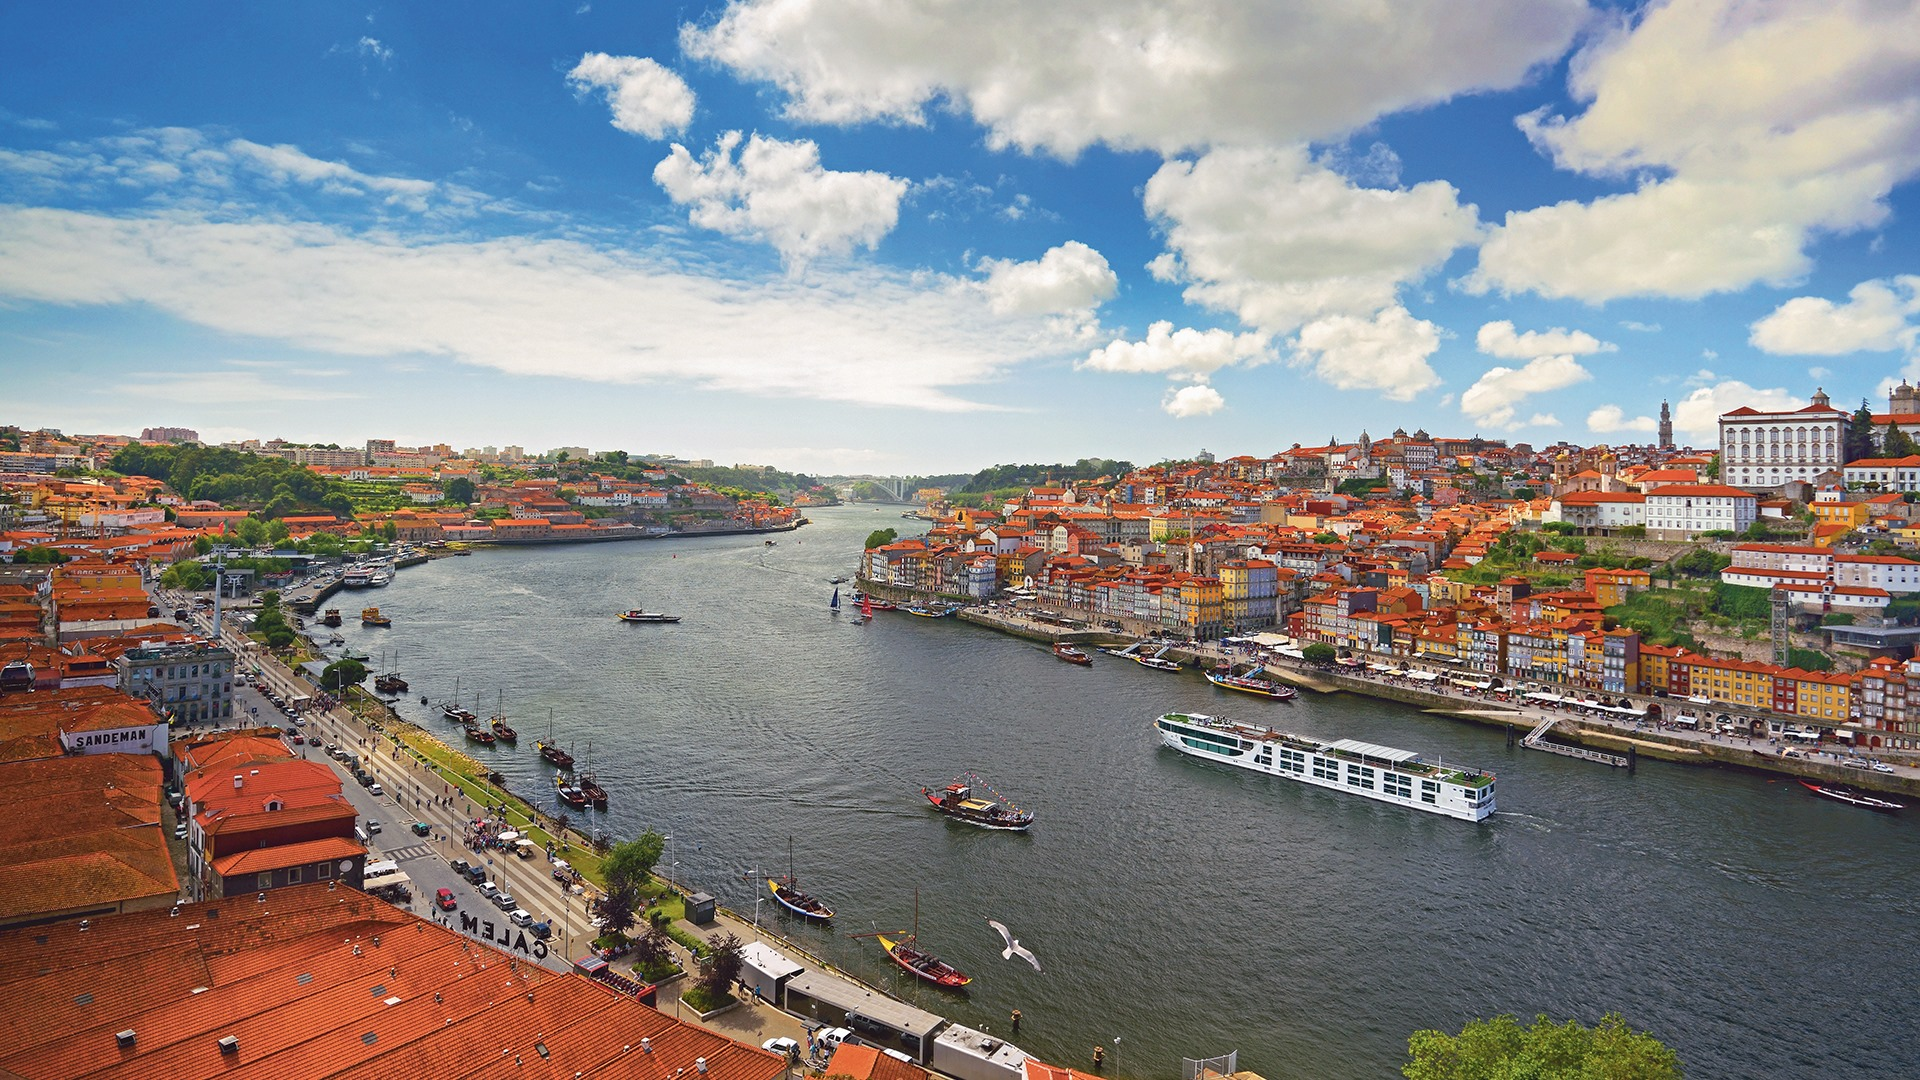 Scenic Group's two award-winning river lines - Scenic Luxury Cruises & Tours and Emerald Cruises – will start their 2021 European river cruise season on Portugal's Douro River fromJuly 30 and July 31, 2021, respectively.